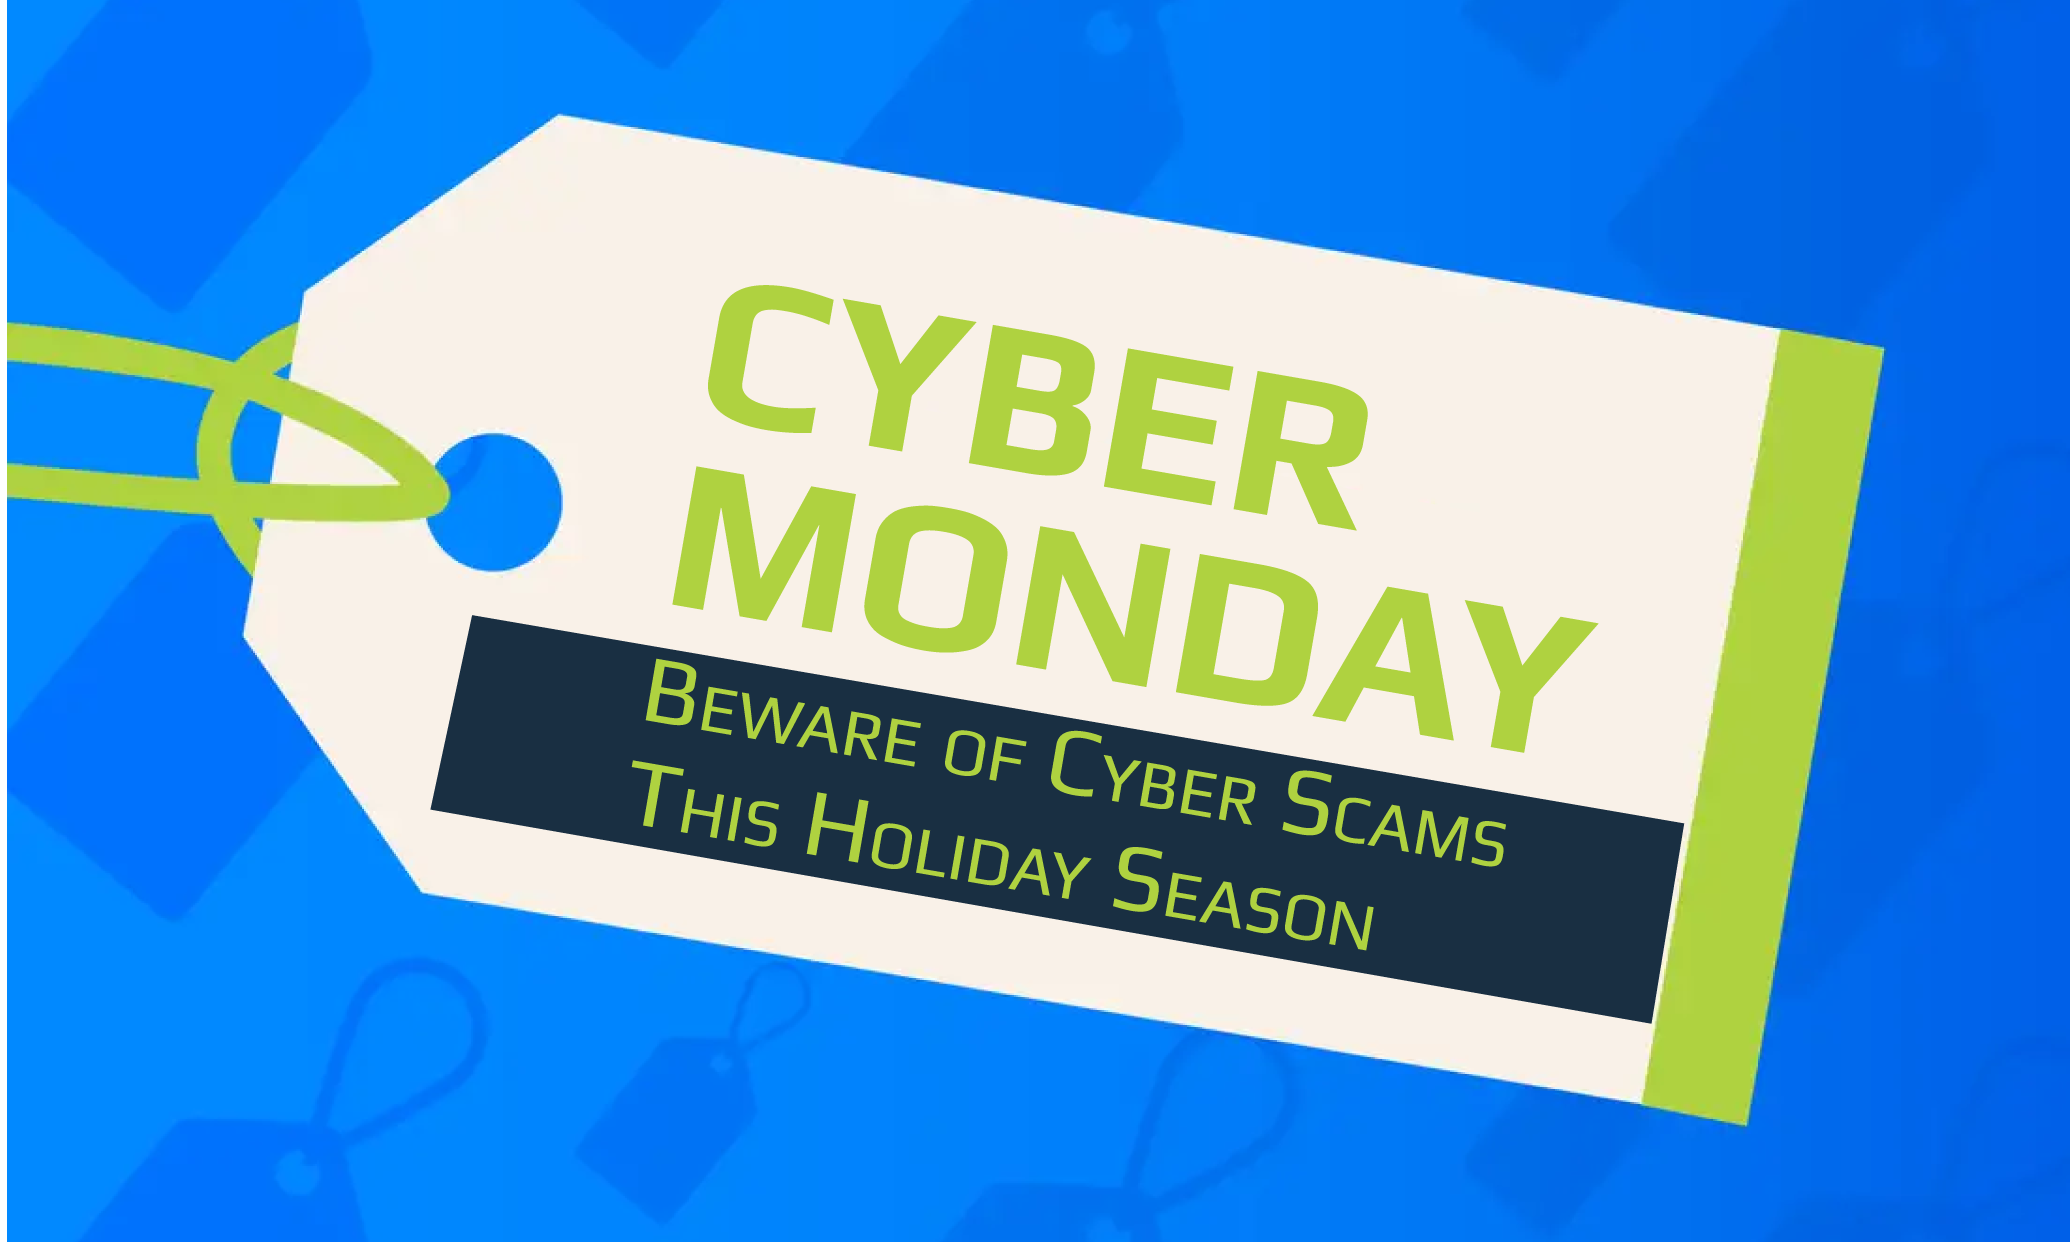 Cyber Monday Warning